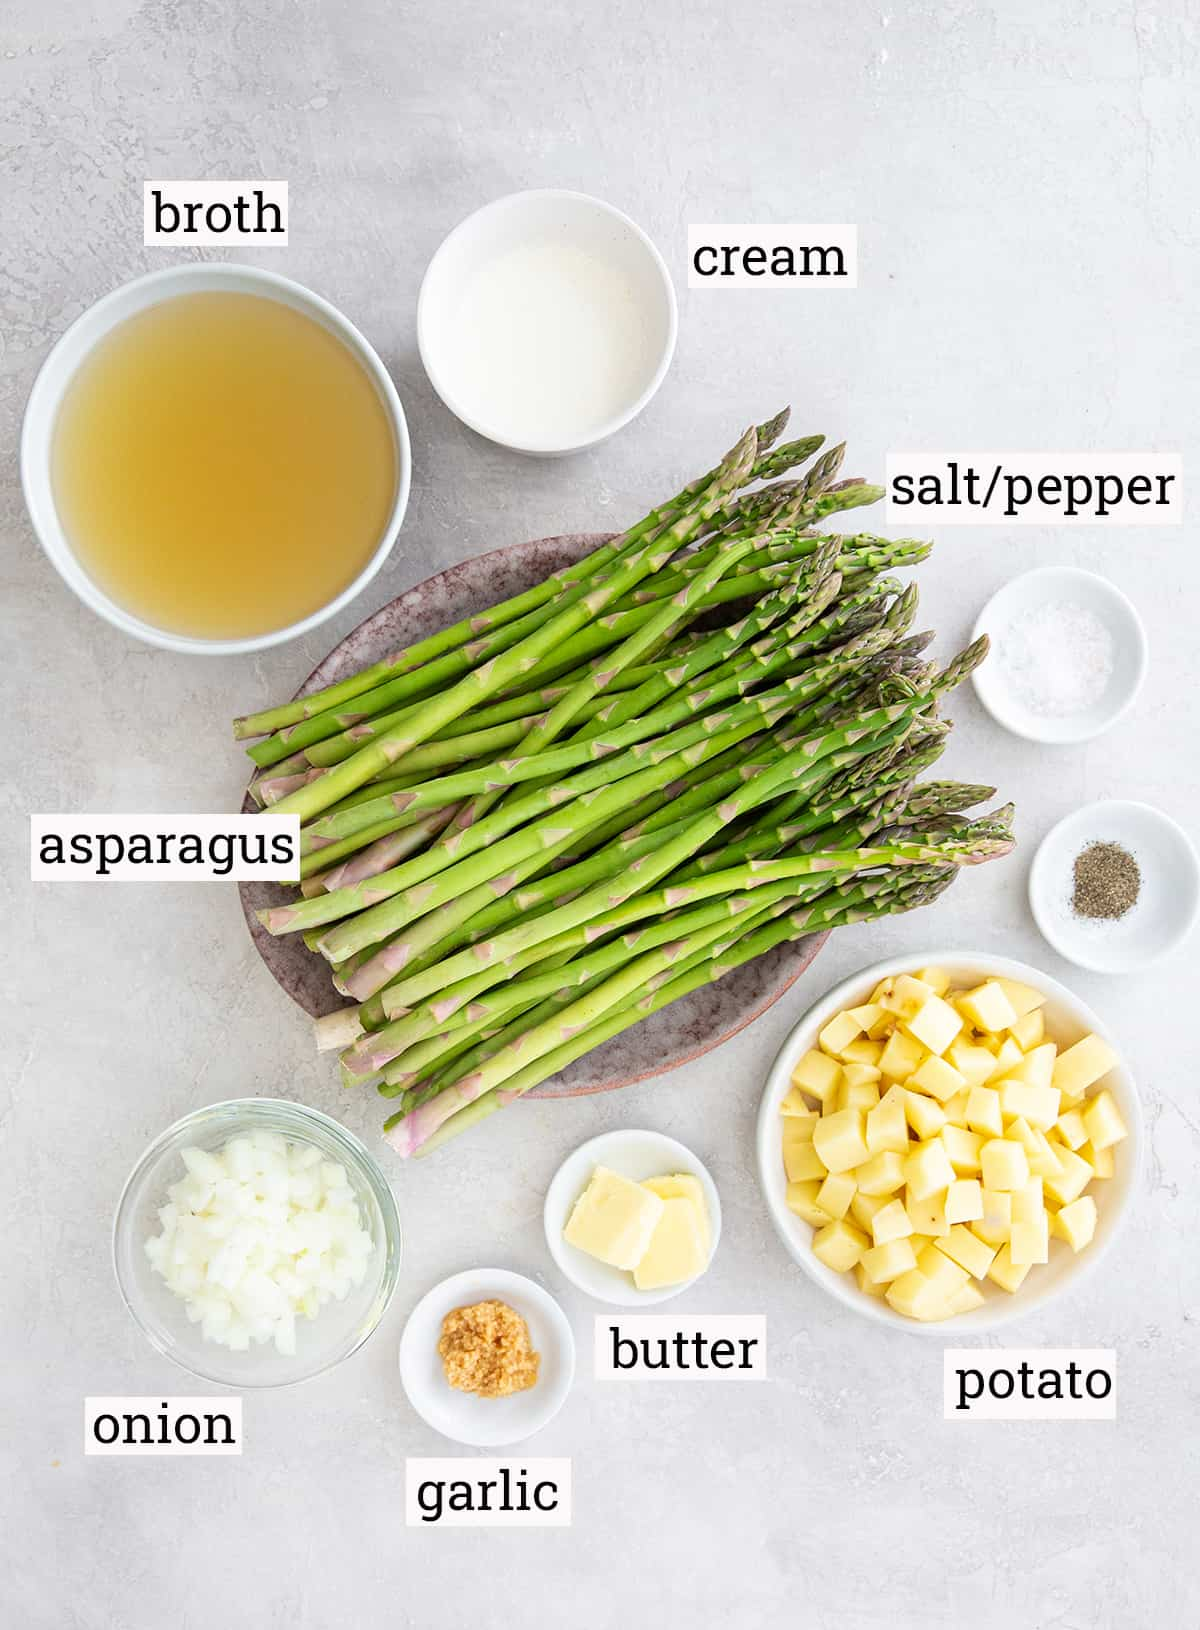 The ingredients for Cream of Asparagus Soup with text overlay.